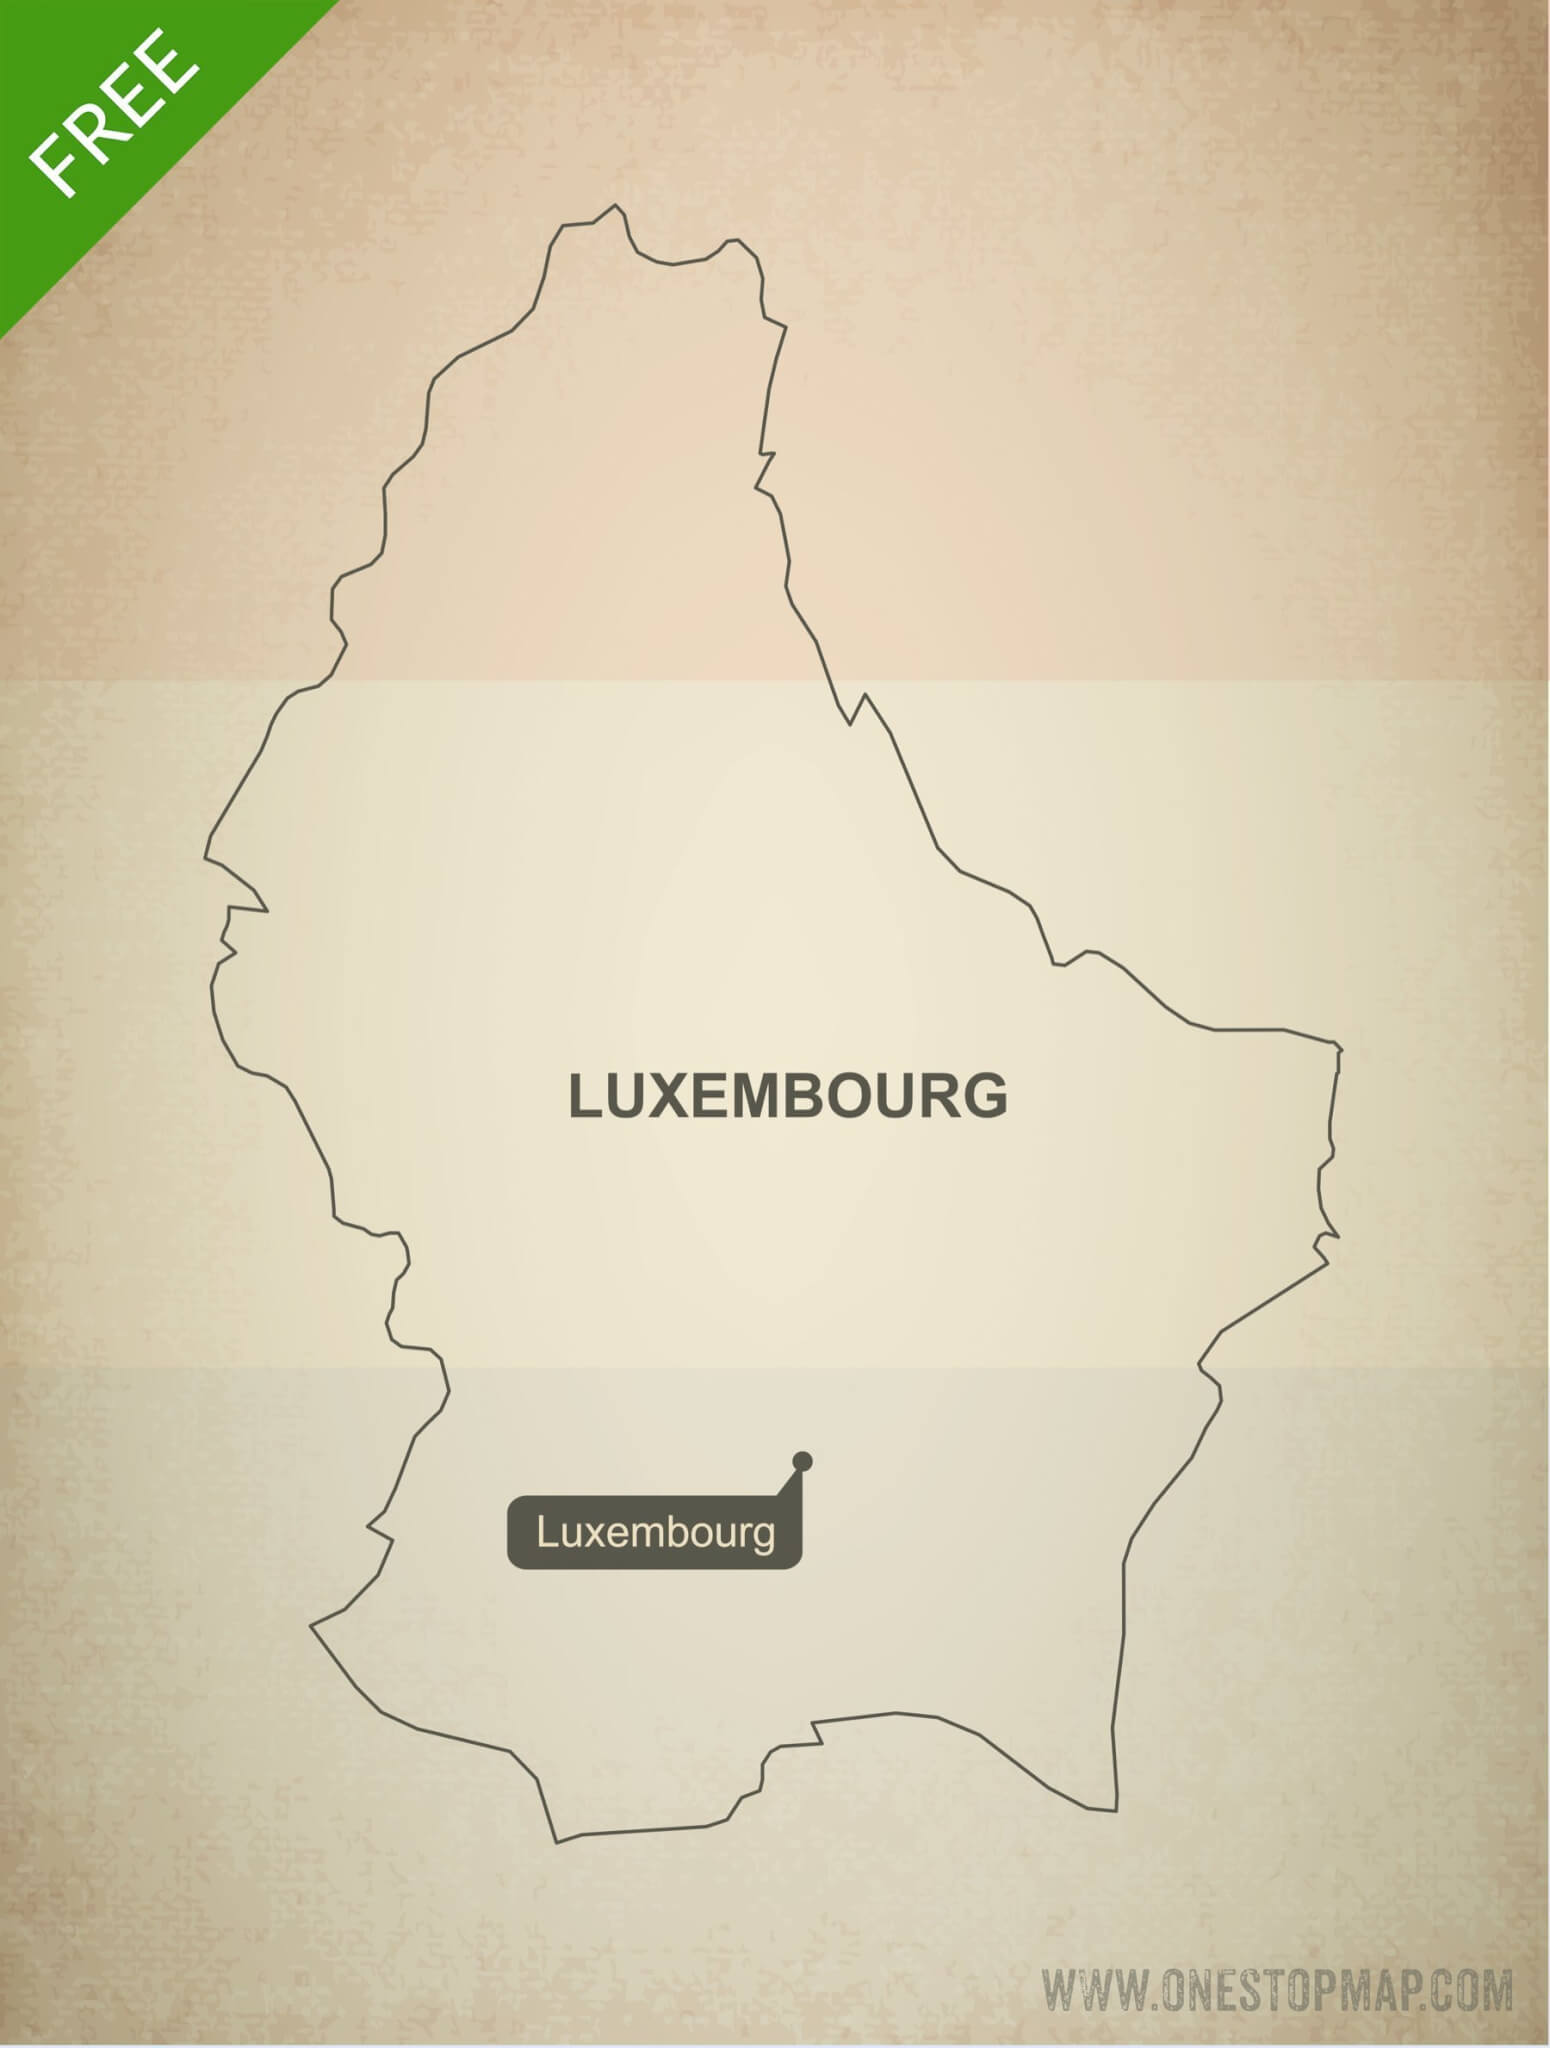 Free vector map of Luxembourg outline